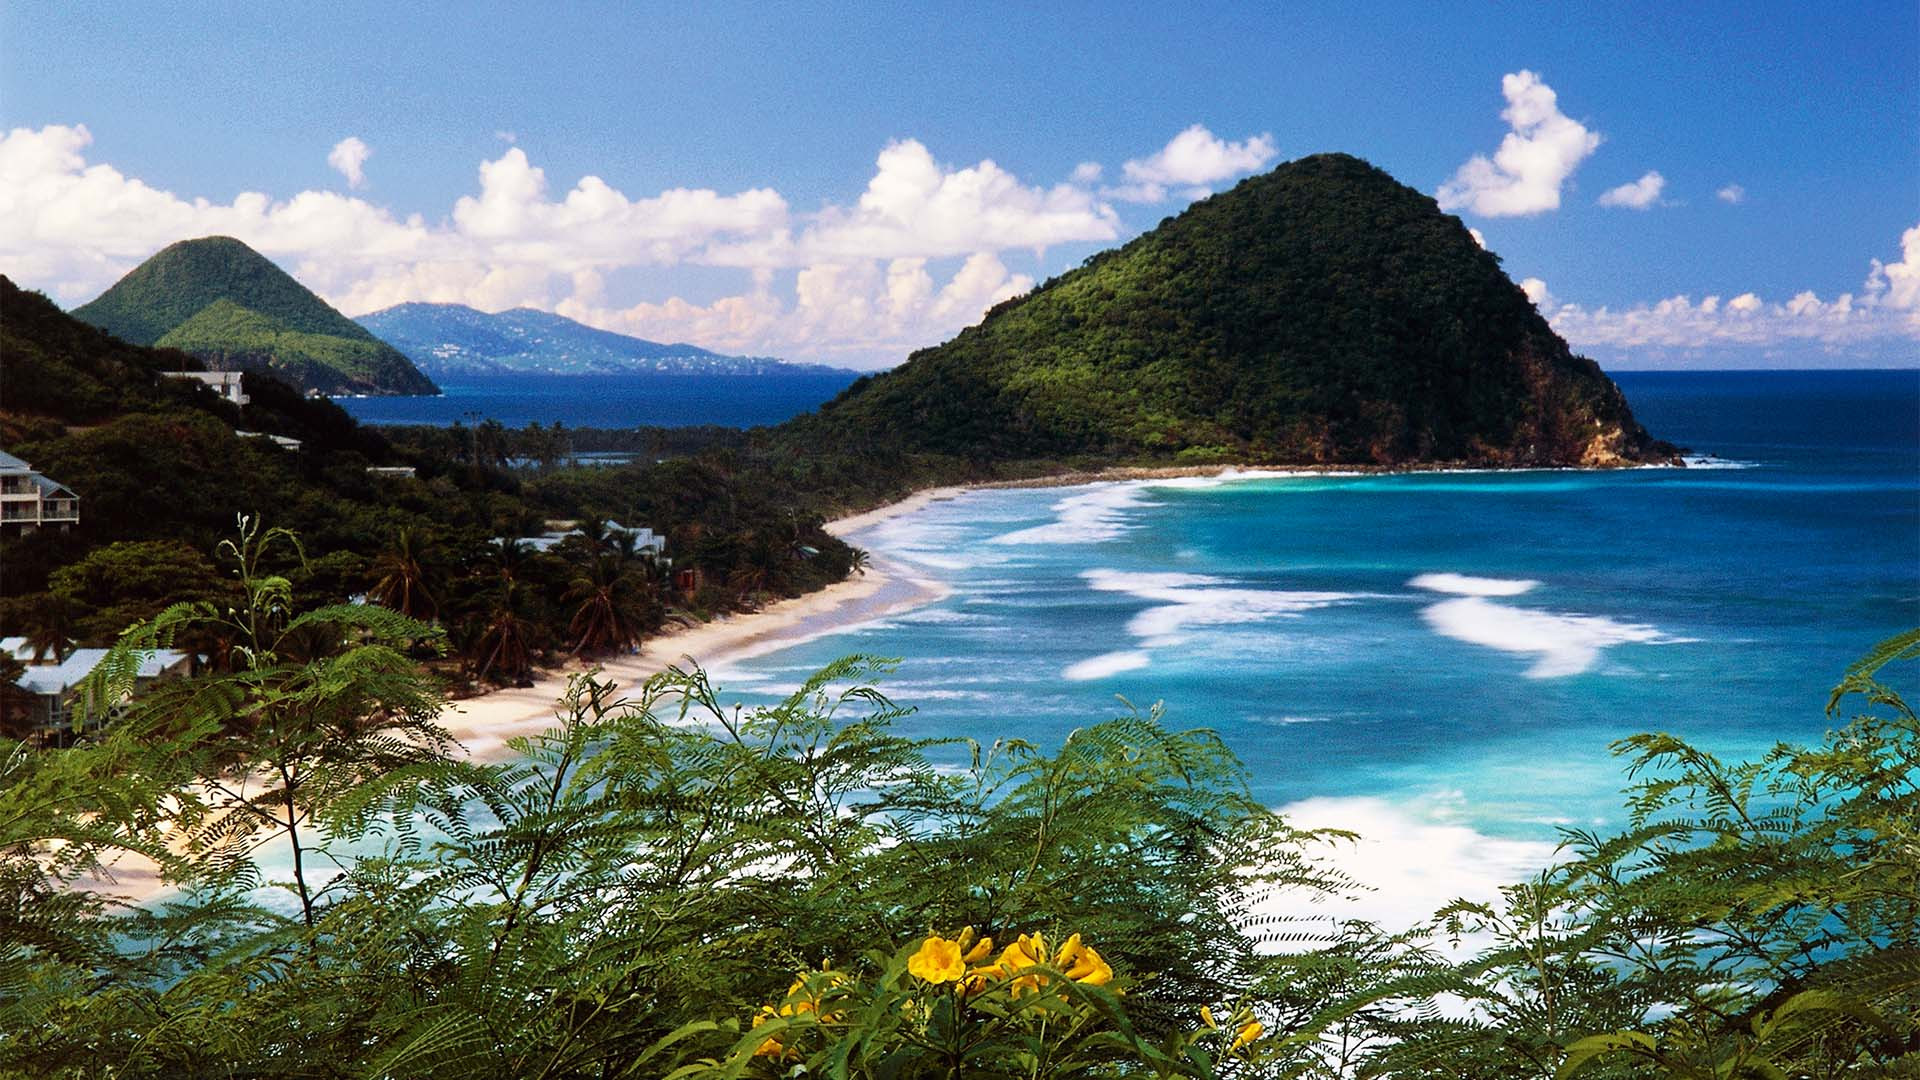 A clifftop view and beach in Tortola